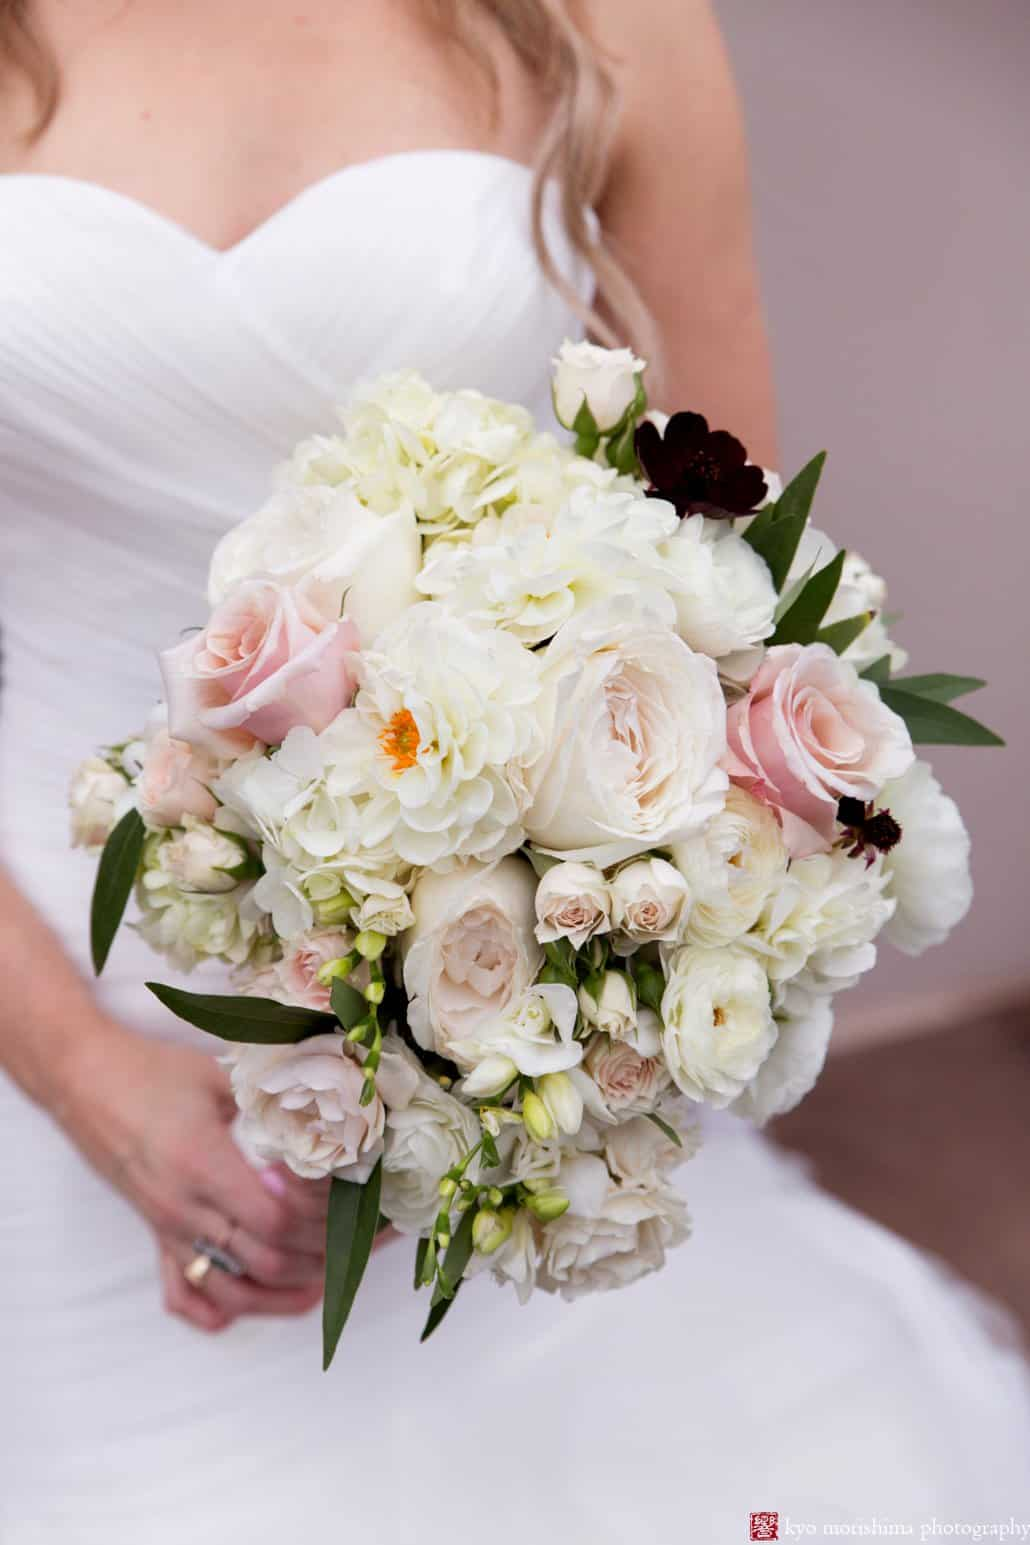 Bride holds white and pale pink rose wedding bouquet by Princeton florist Viburnum